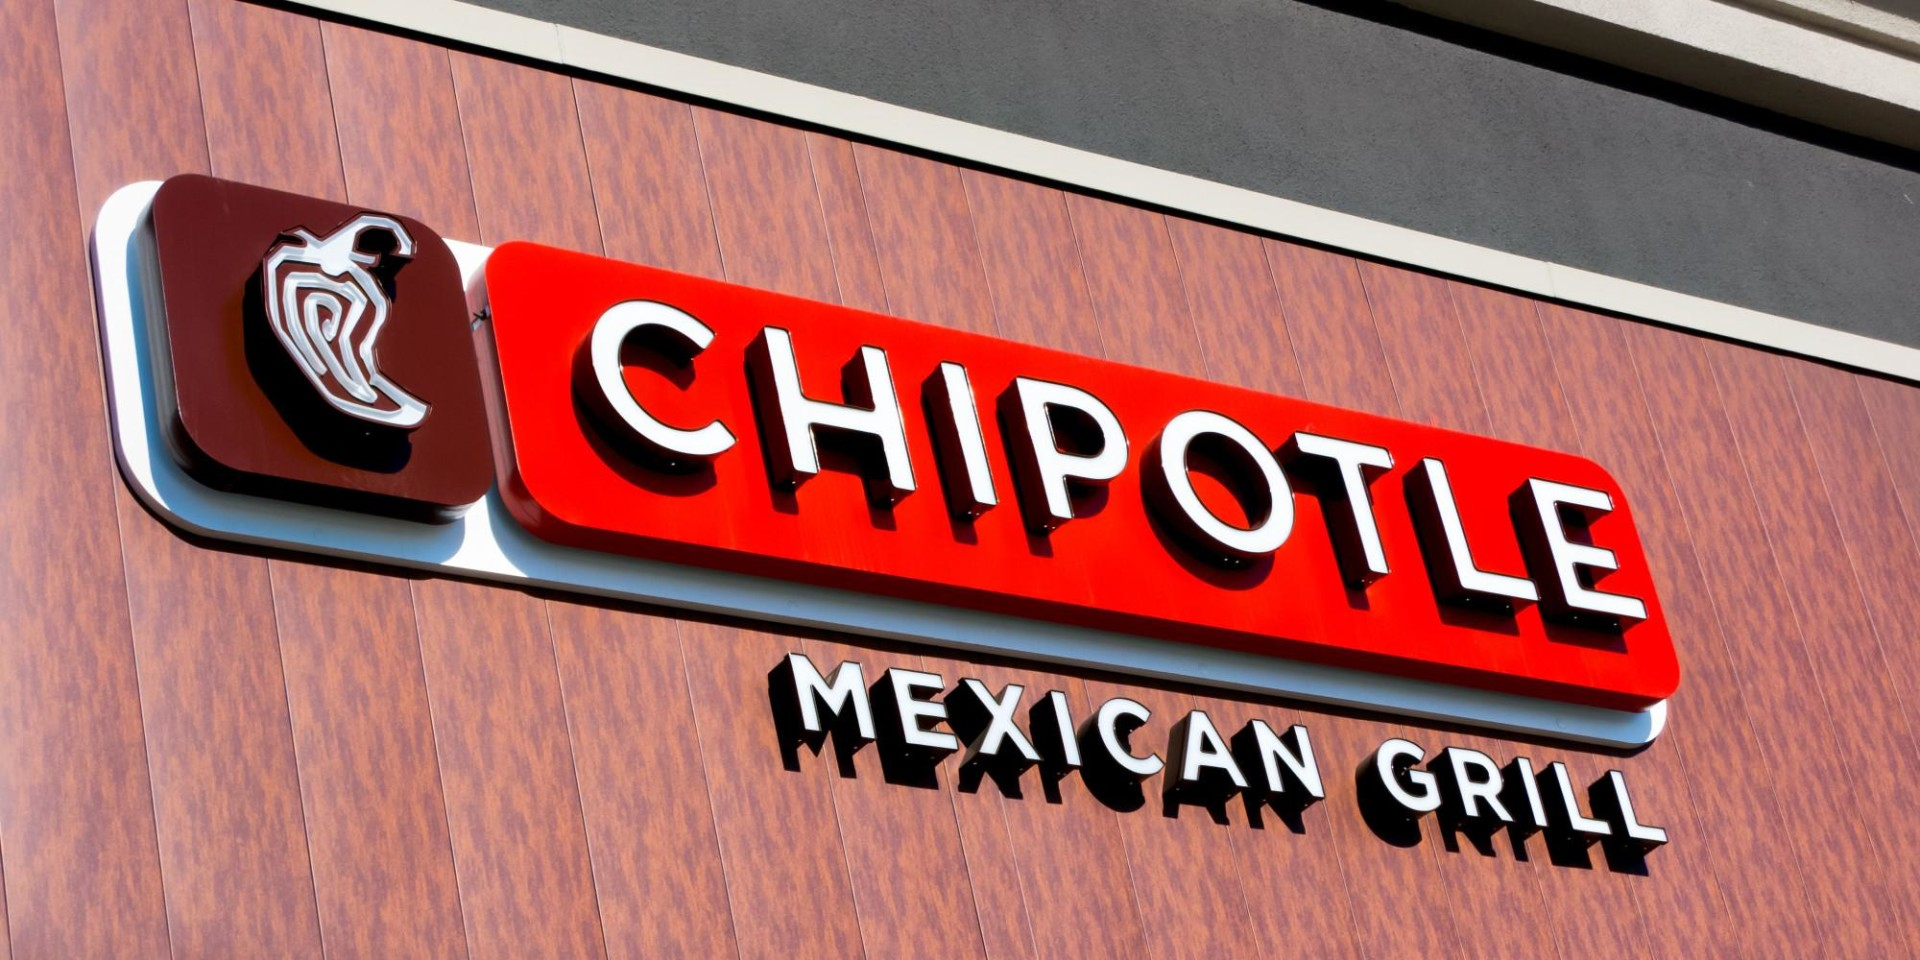 NYSE: CMG | Chipotle Mexican Grill, Inc.  News, Ratings, and Charts